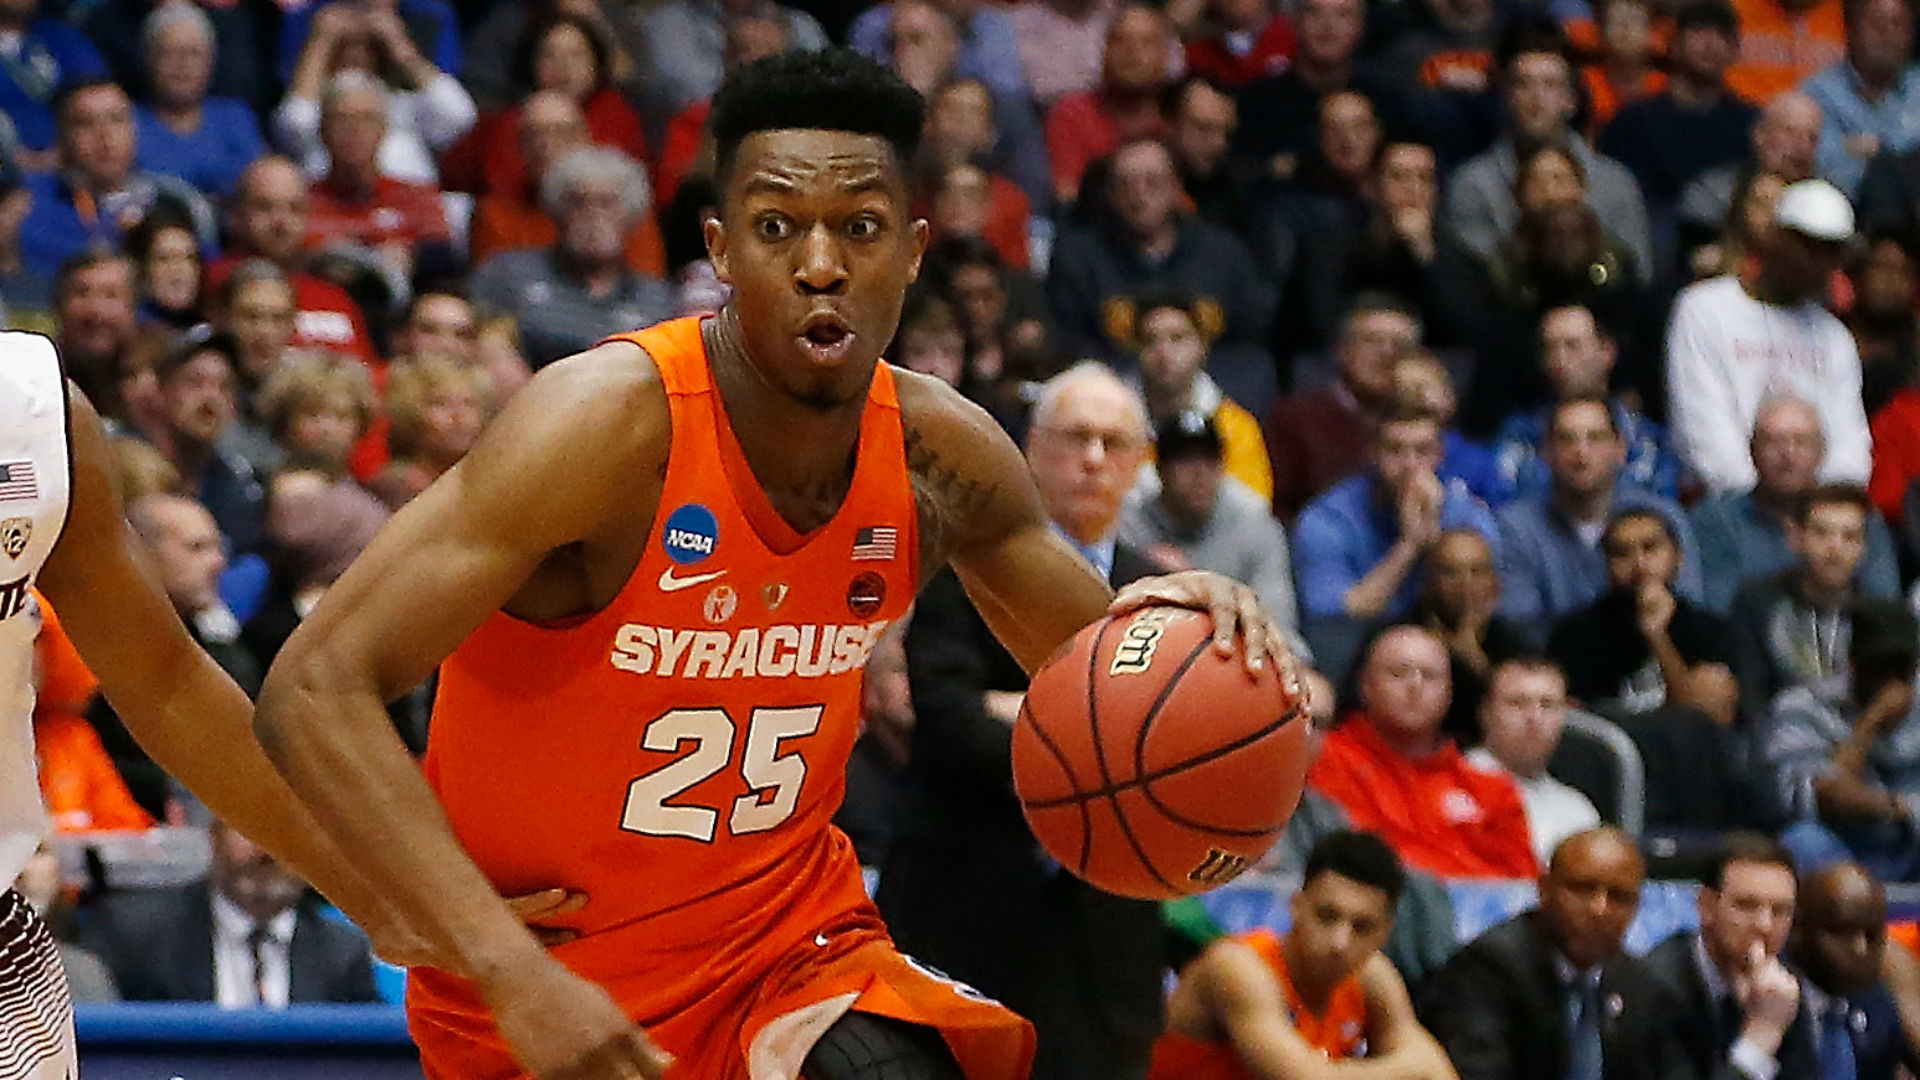 Syracuse basketball defeats TCU 57-52 (NCAA Tournament): Brent Axe recap